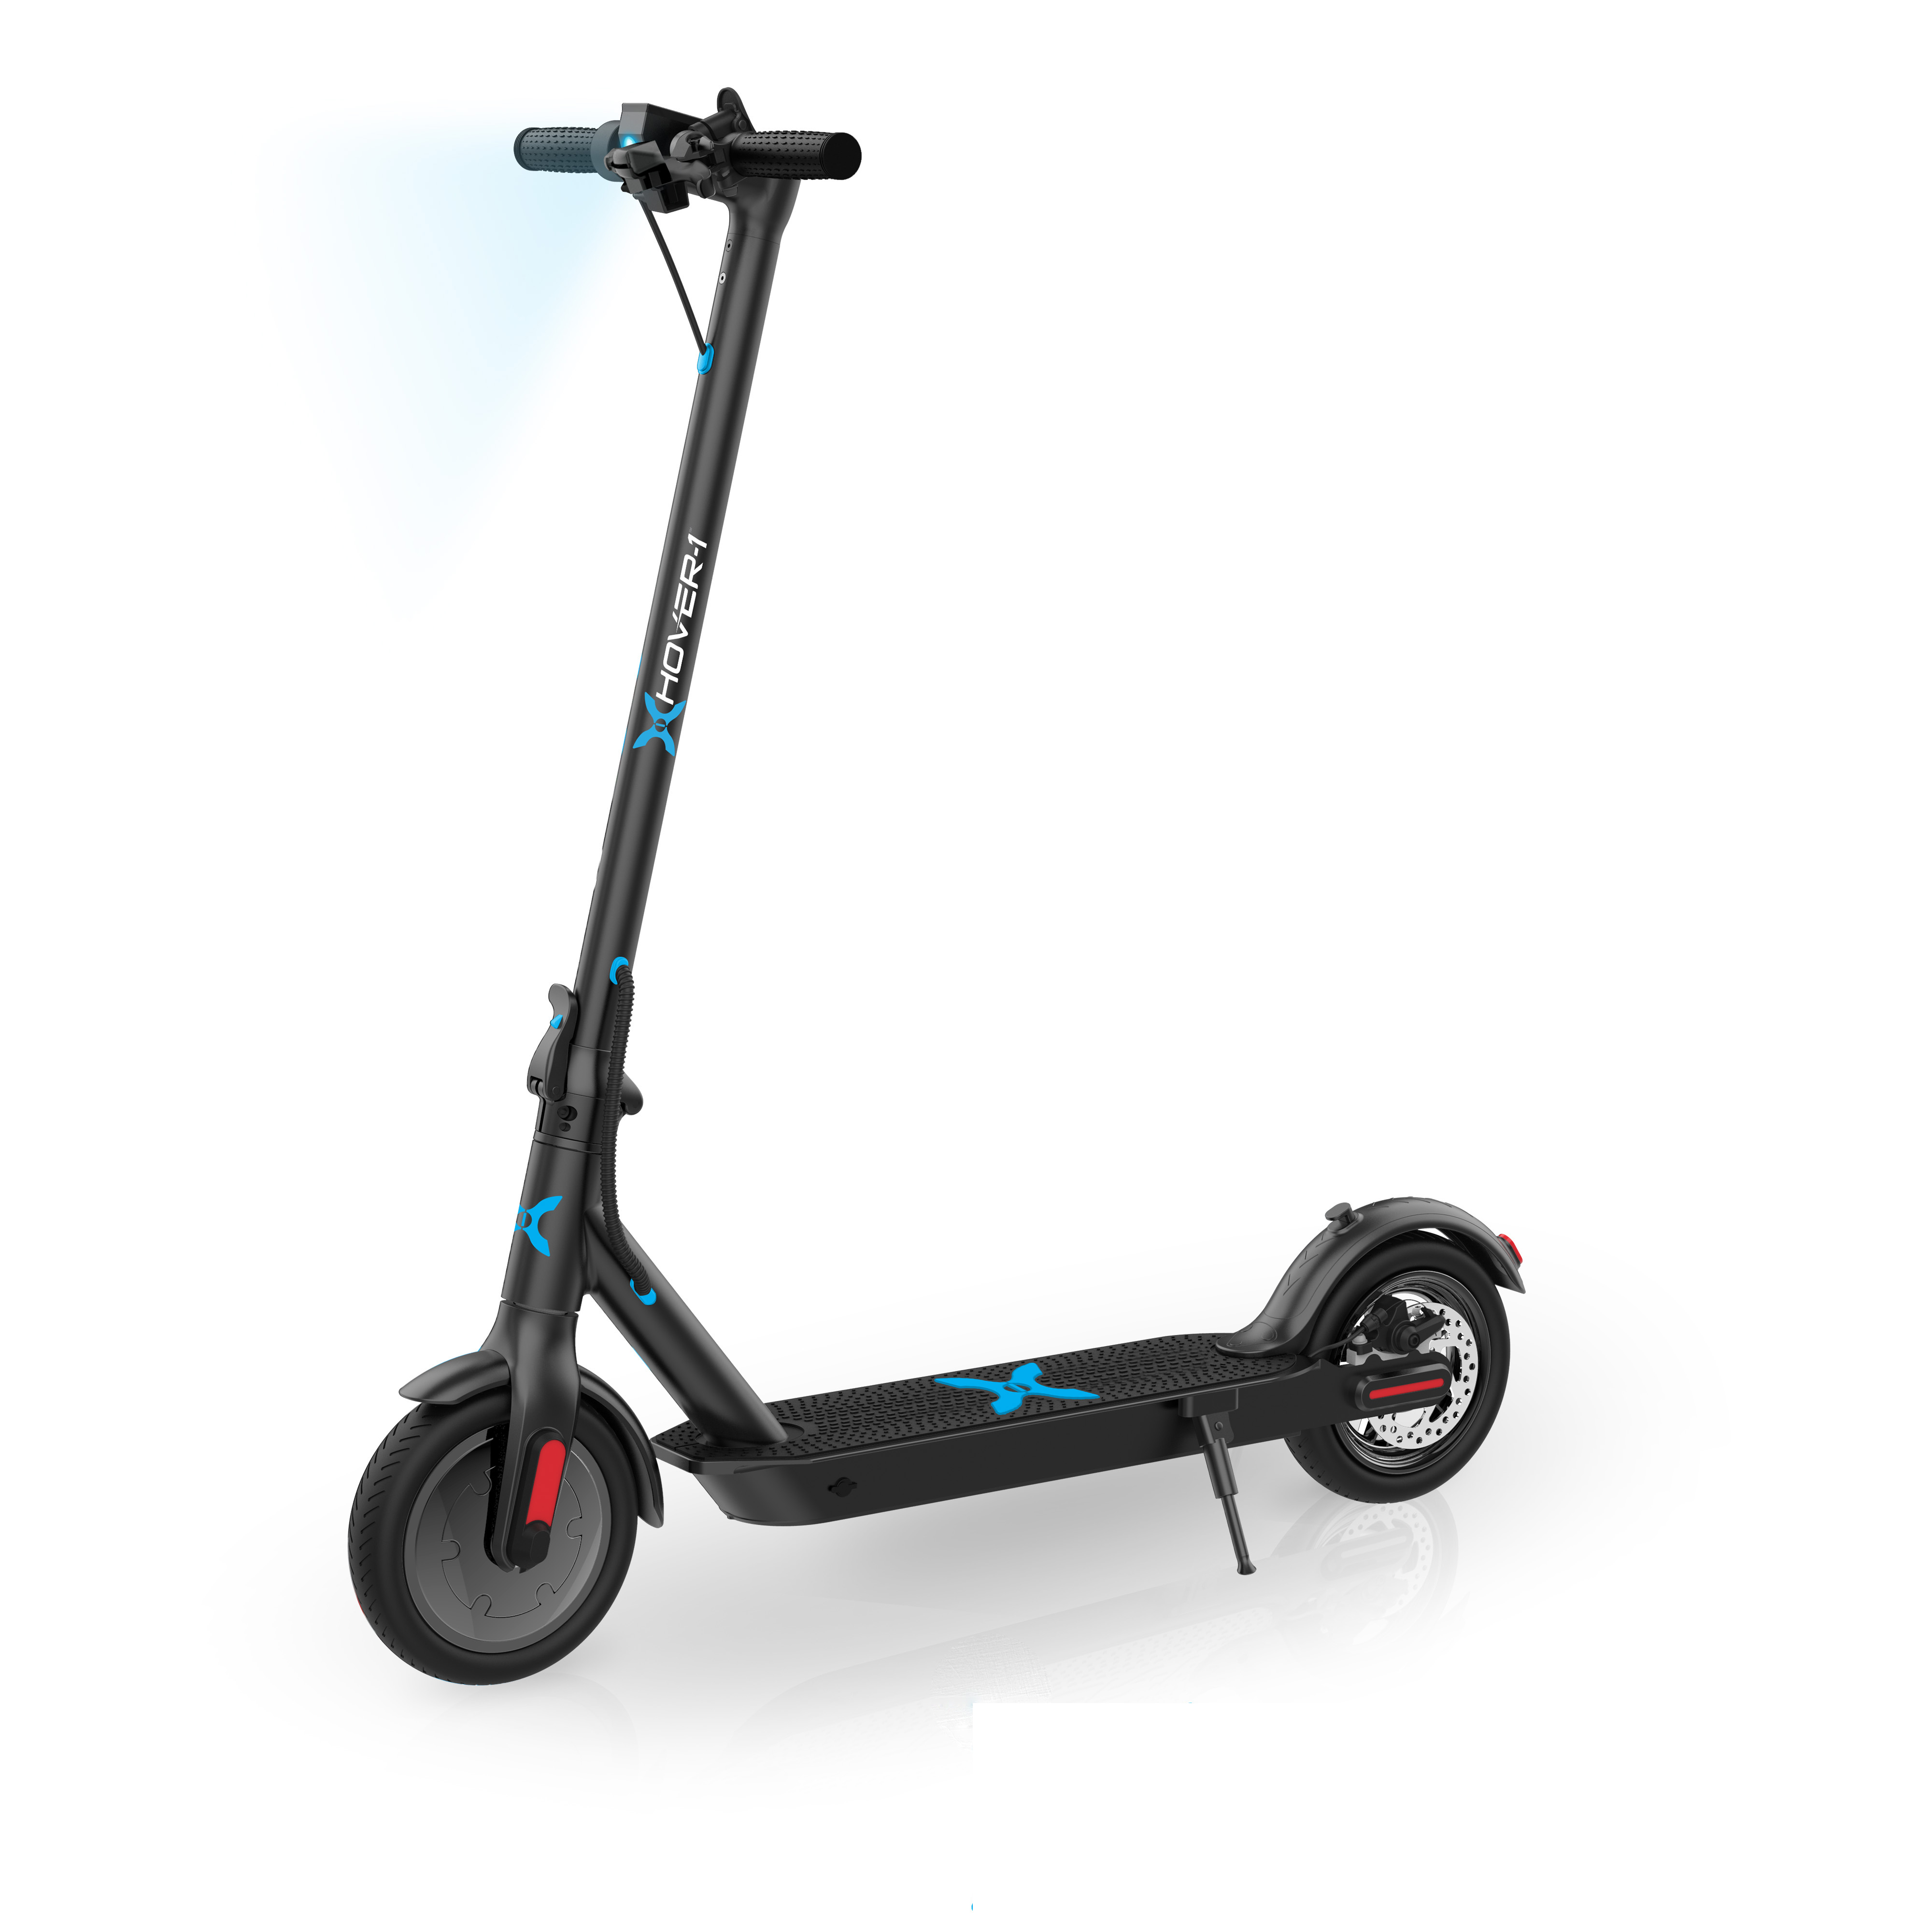 "Hover-1 Pioneer Electric Folding Scooter w/ 10"" Air-Filled Tires, Built-In Bluetooth Speaker, LED Headlight/Lighting/Display, Electronic & Mechanical Brake, 18 MPH Max Speed – Just $198.00 (Reg $348)"